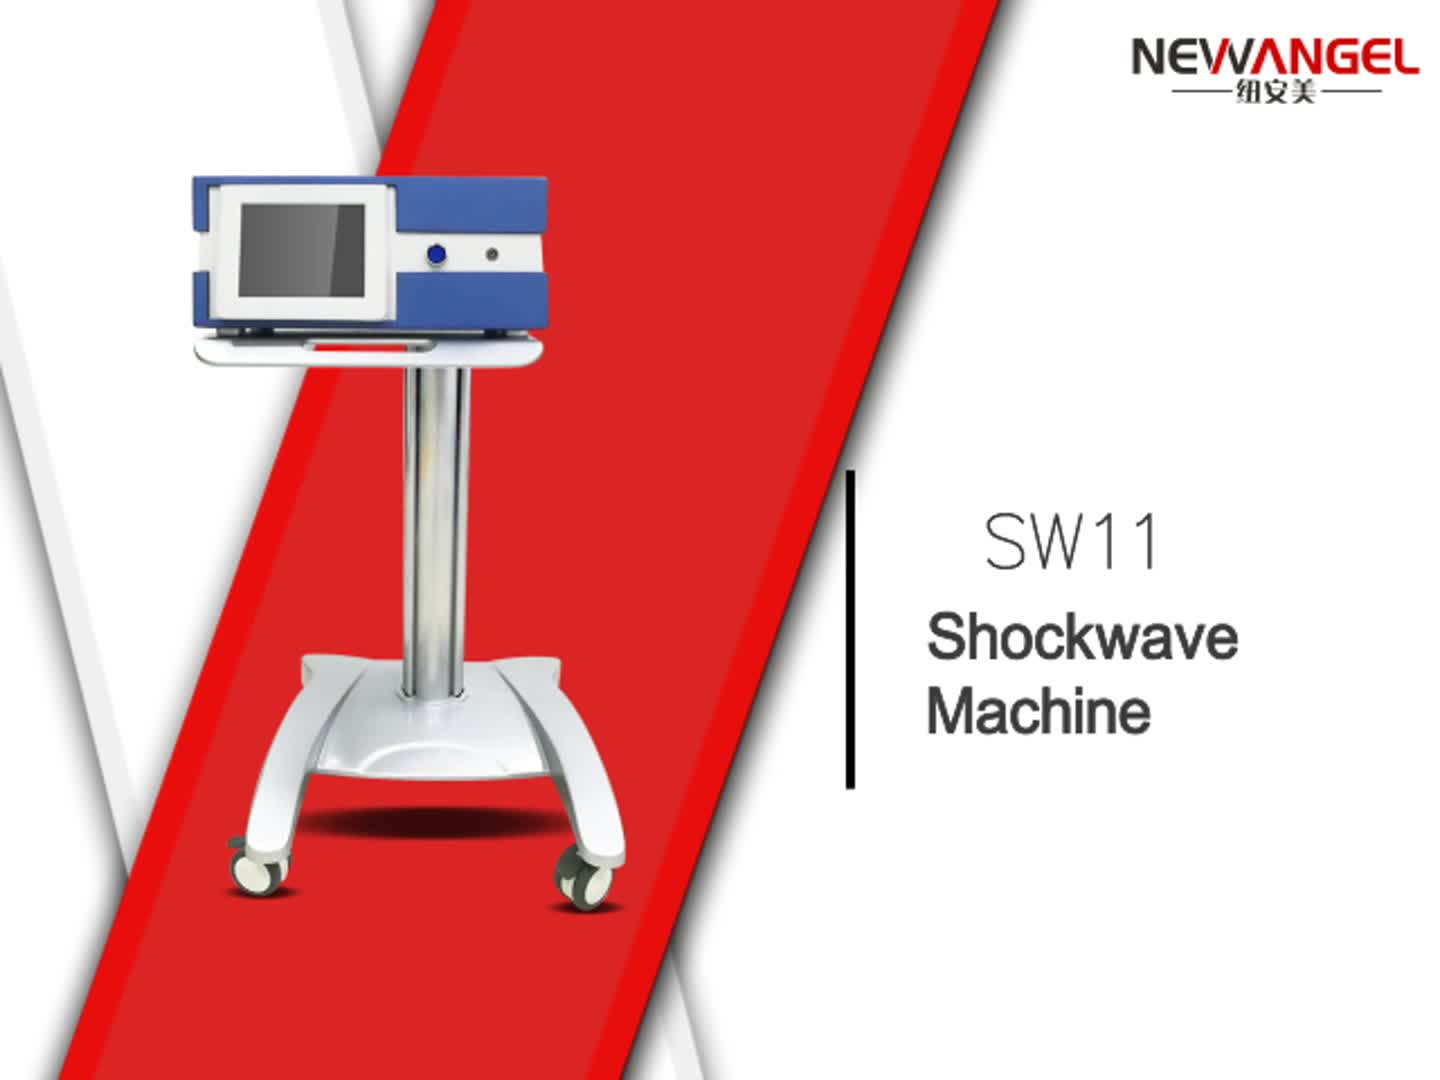 Shock wave therapy equipment medical use sw11 shockwave